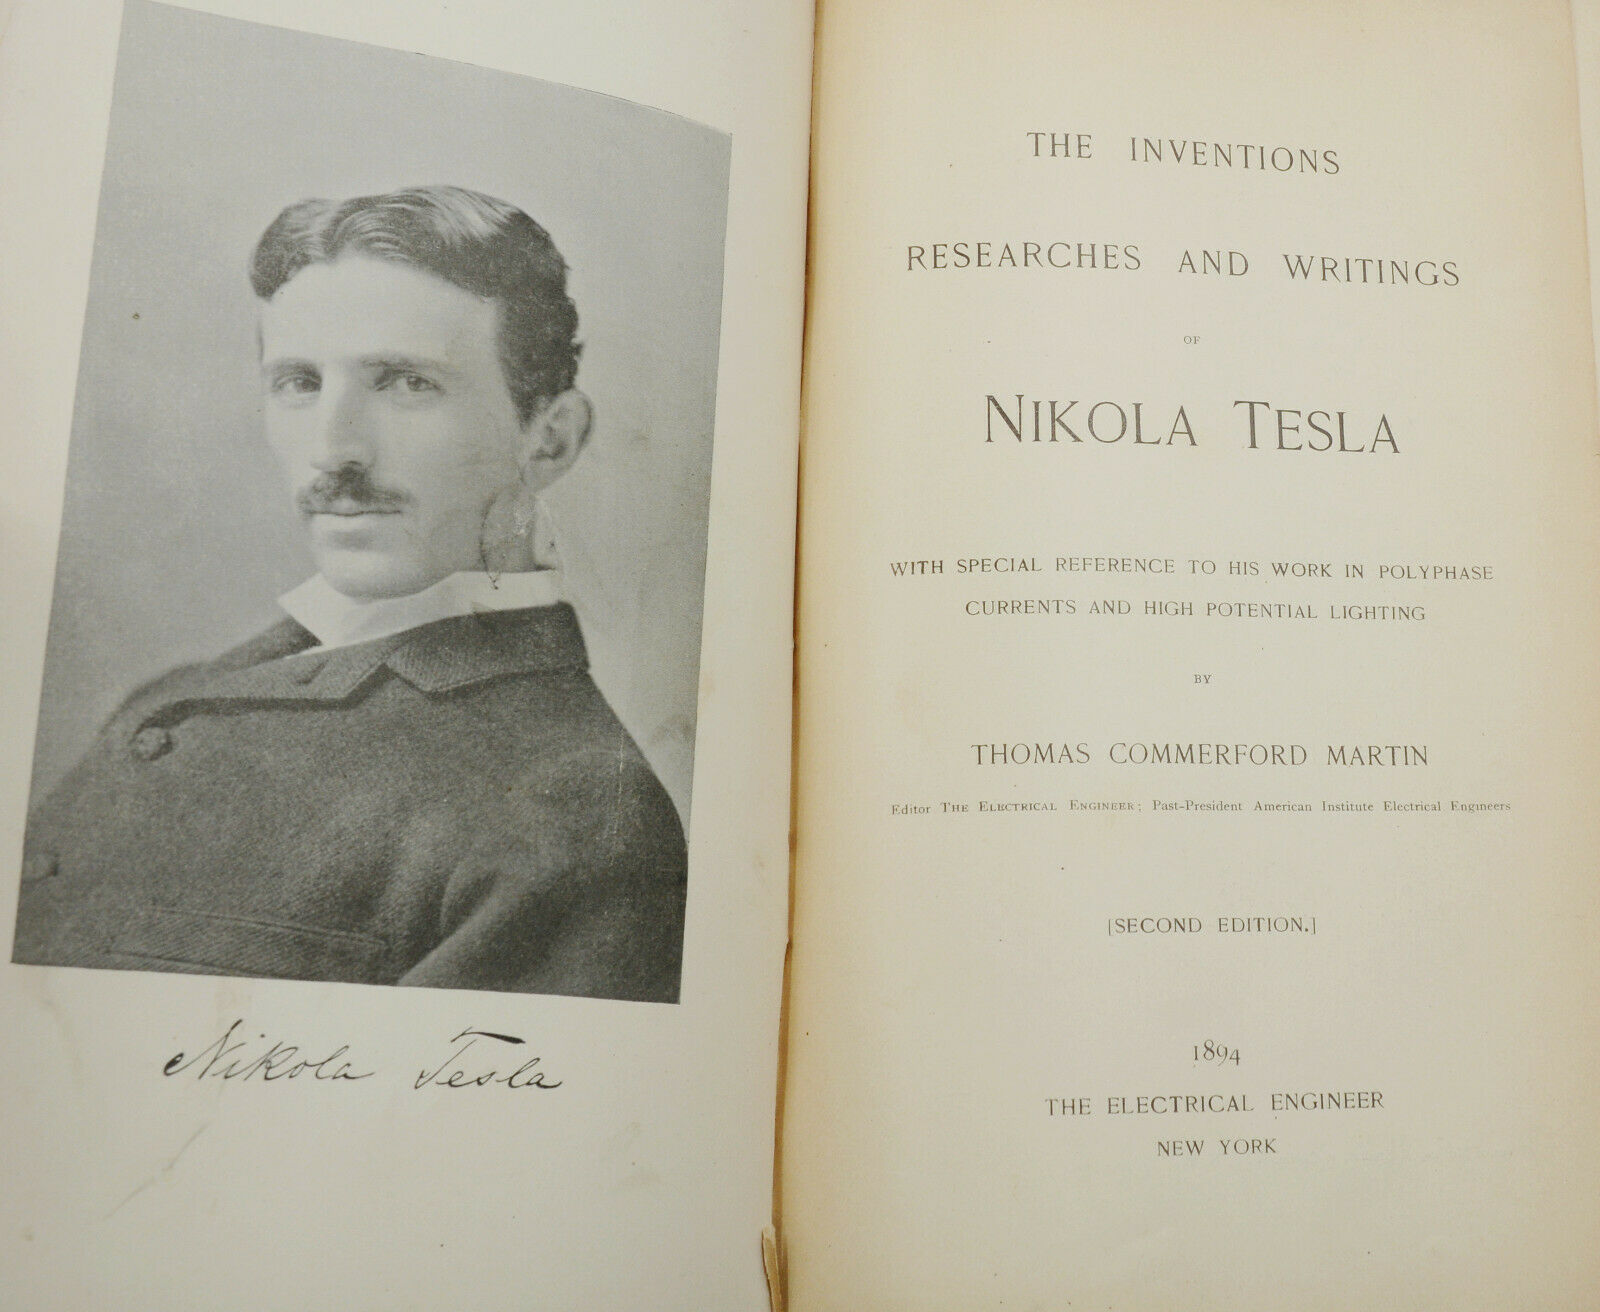 The Inventions, Researches and Writings of Nikola Tesla ...